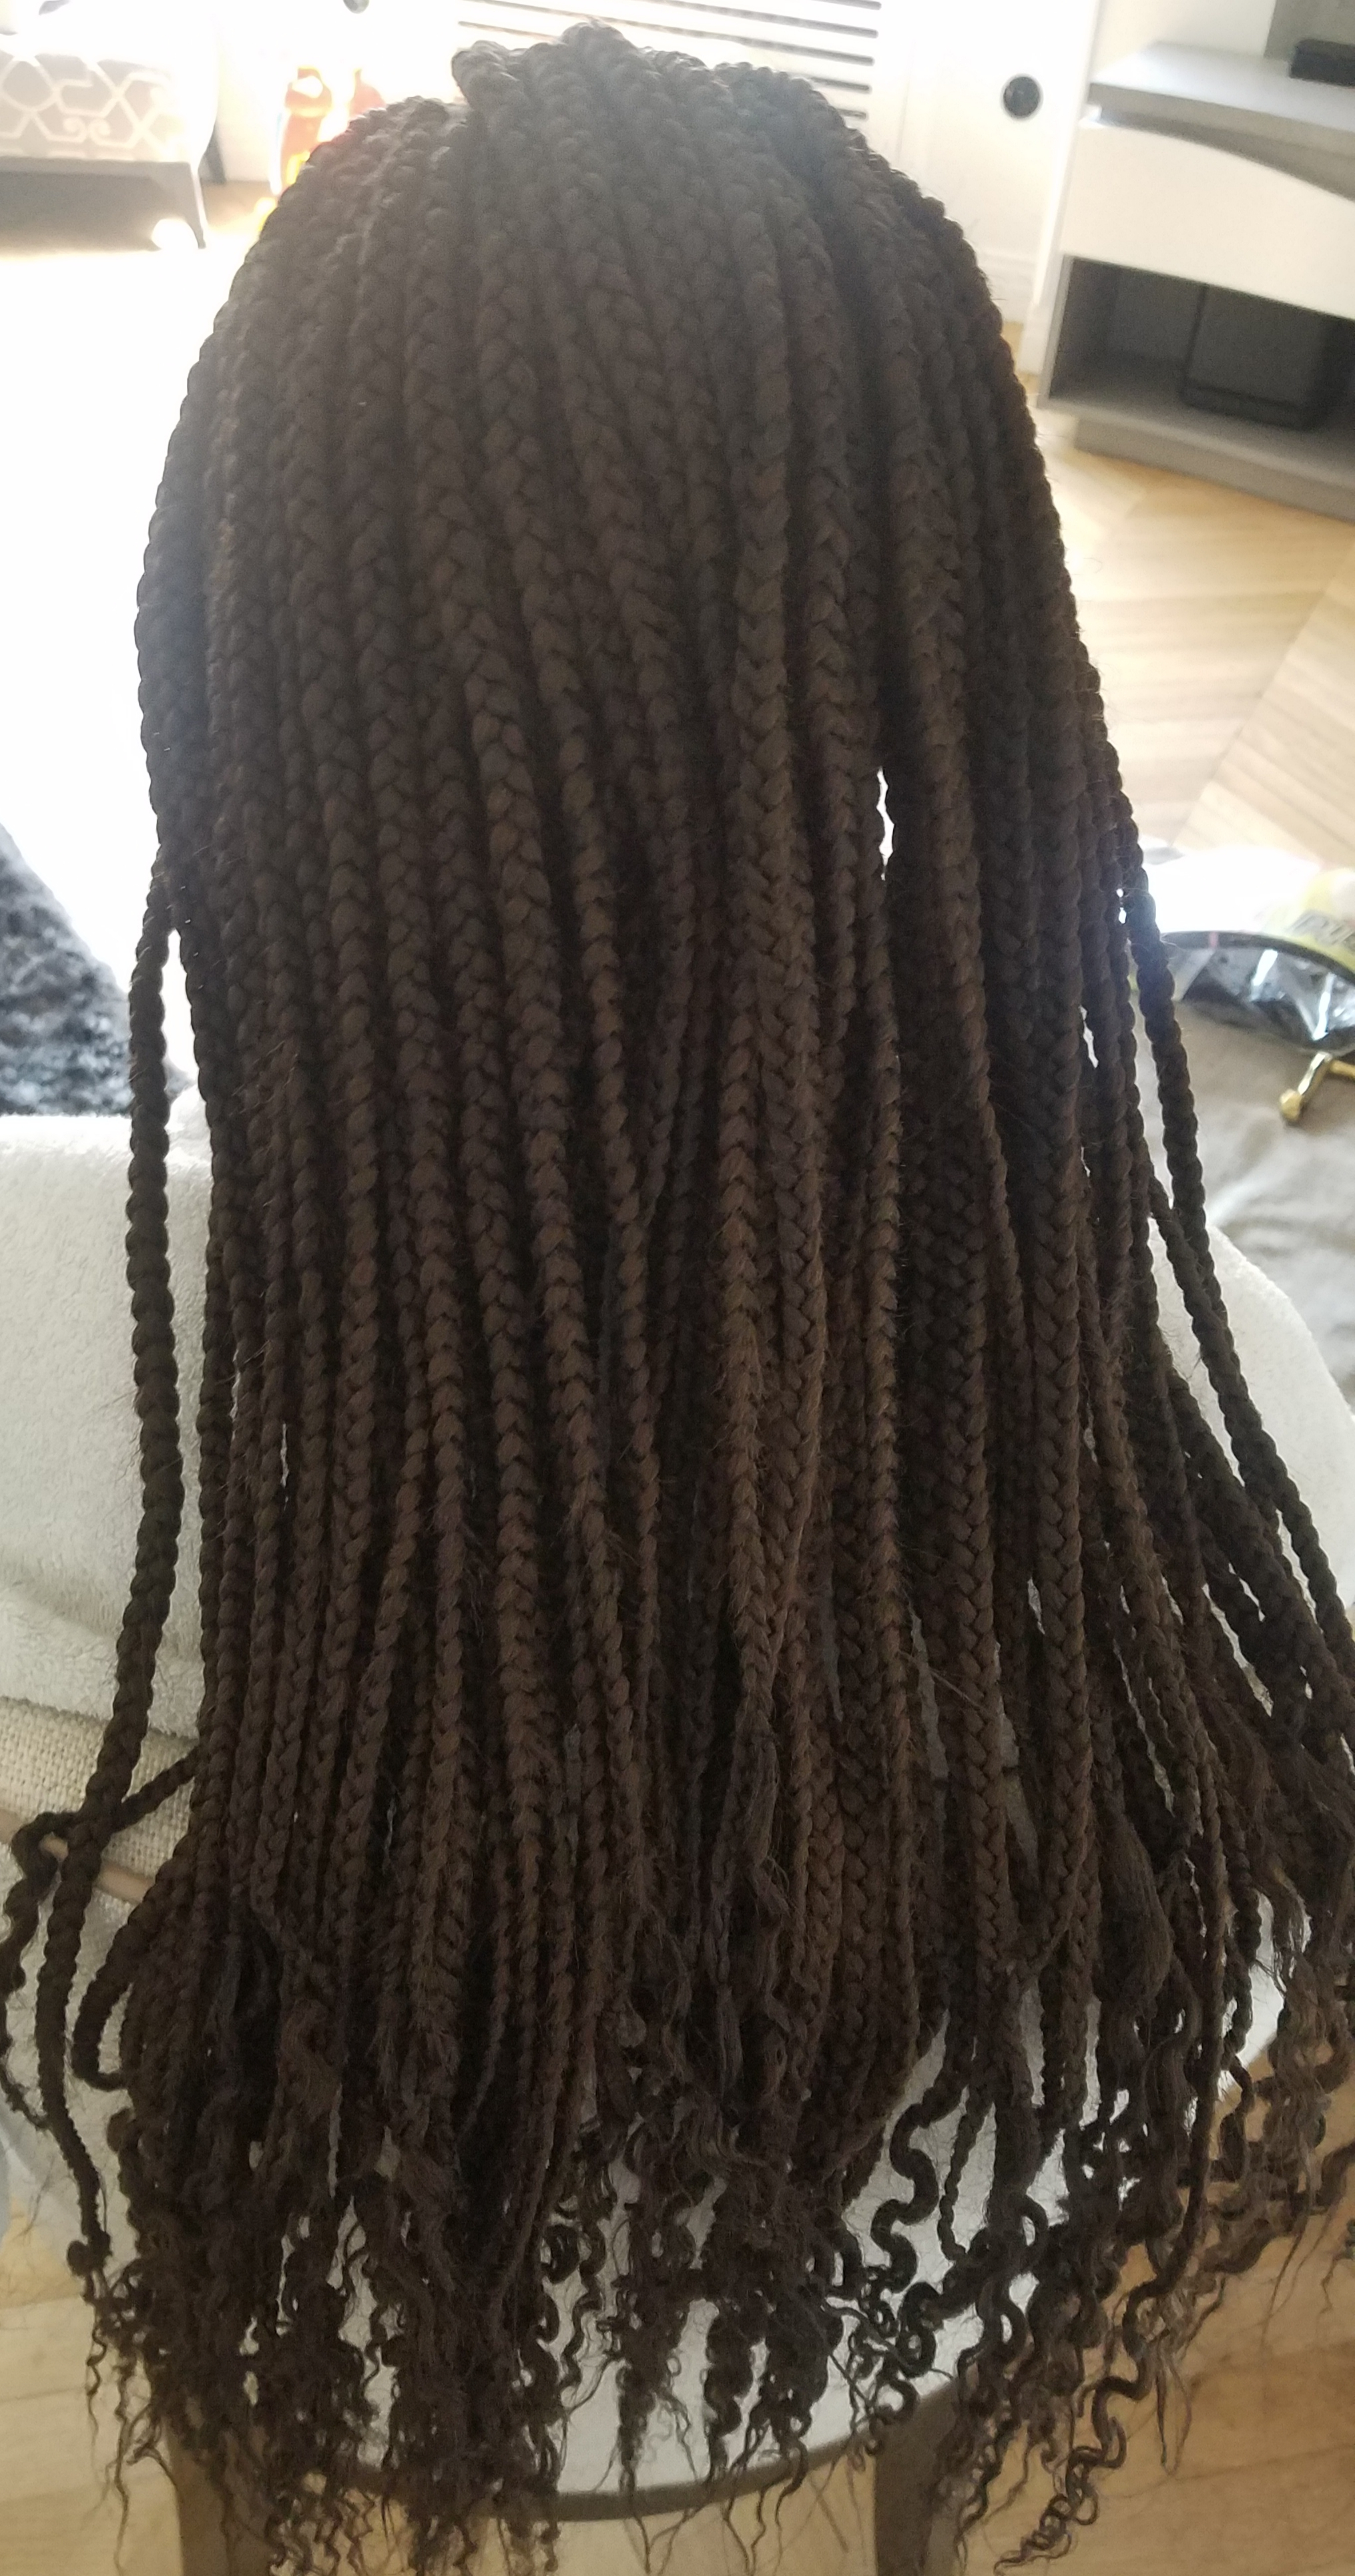 salon de coiffure afro tresse tresses box braids crochet braids vanilles tissages paris 75 77 78 91 92 93 94 95 UPHNGHQN